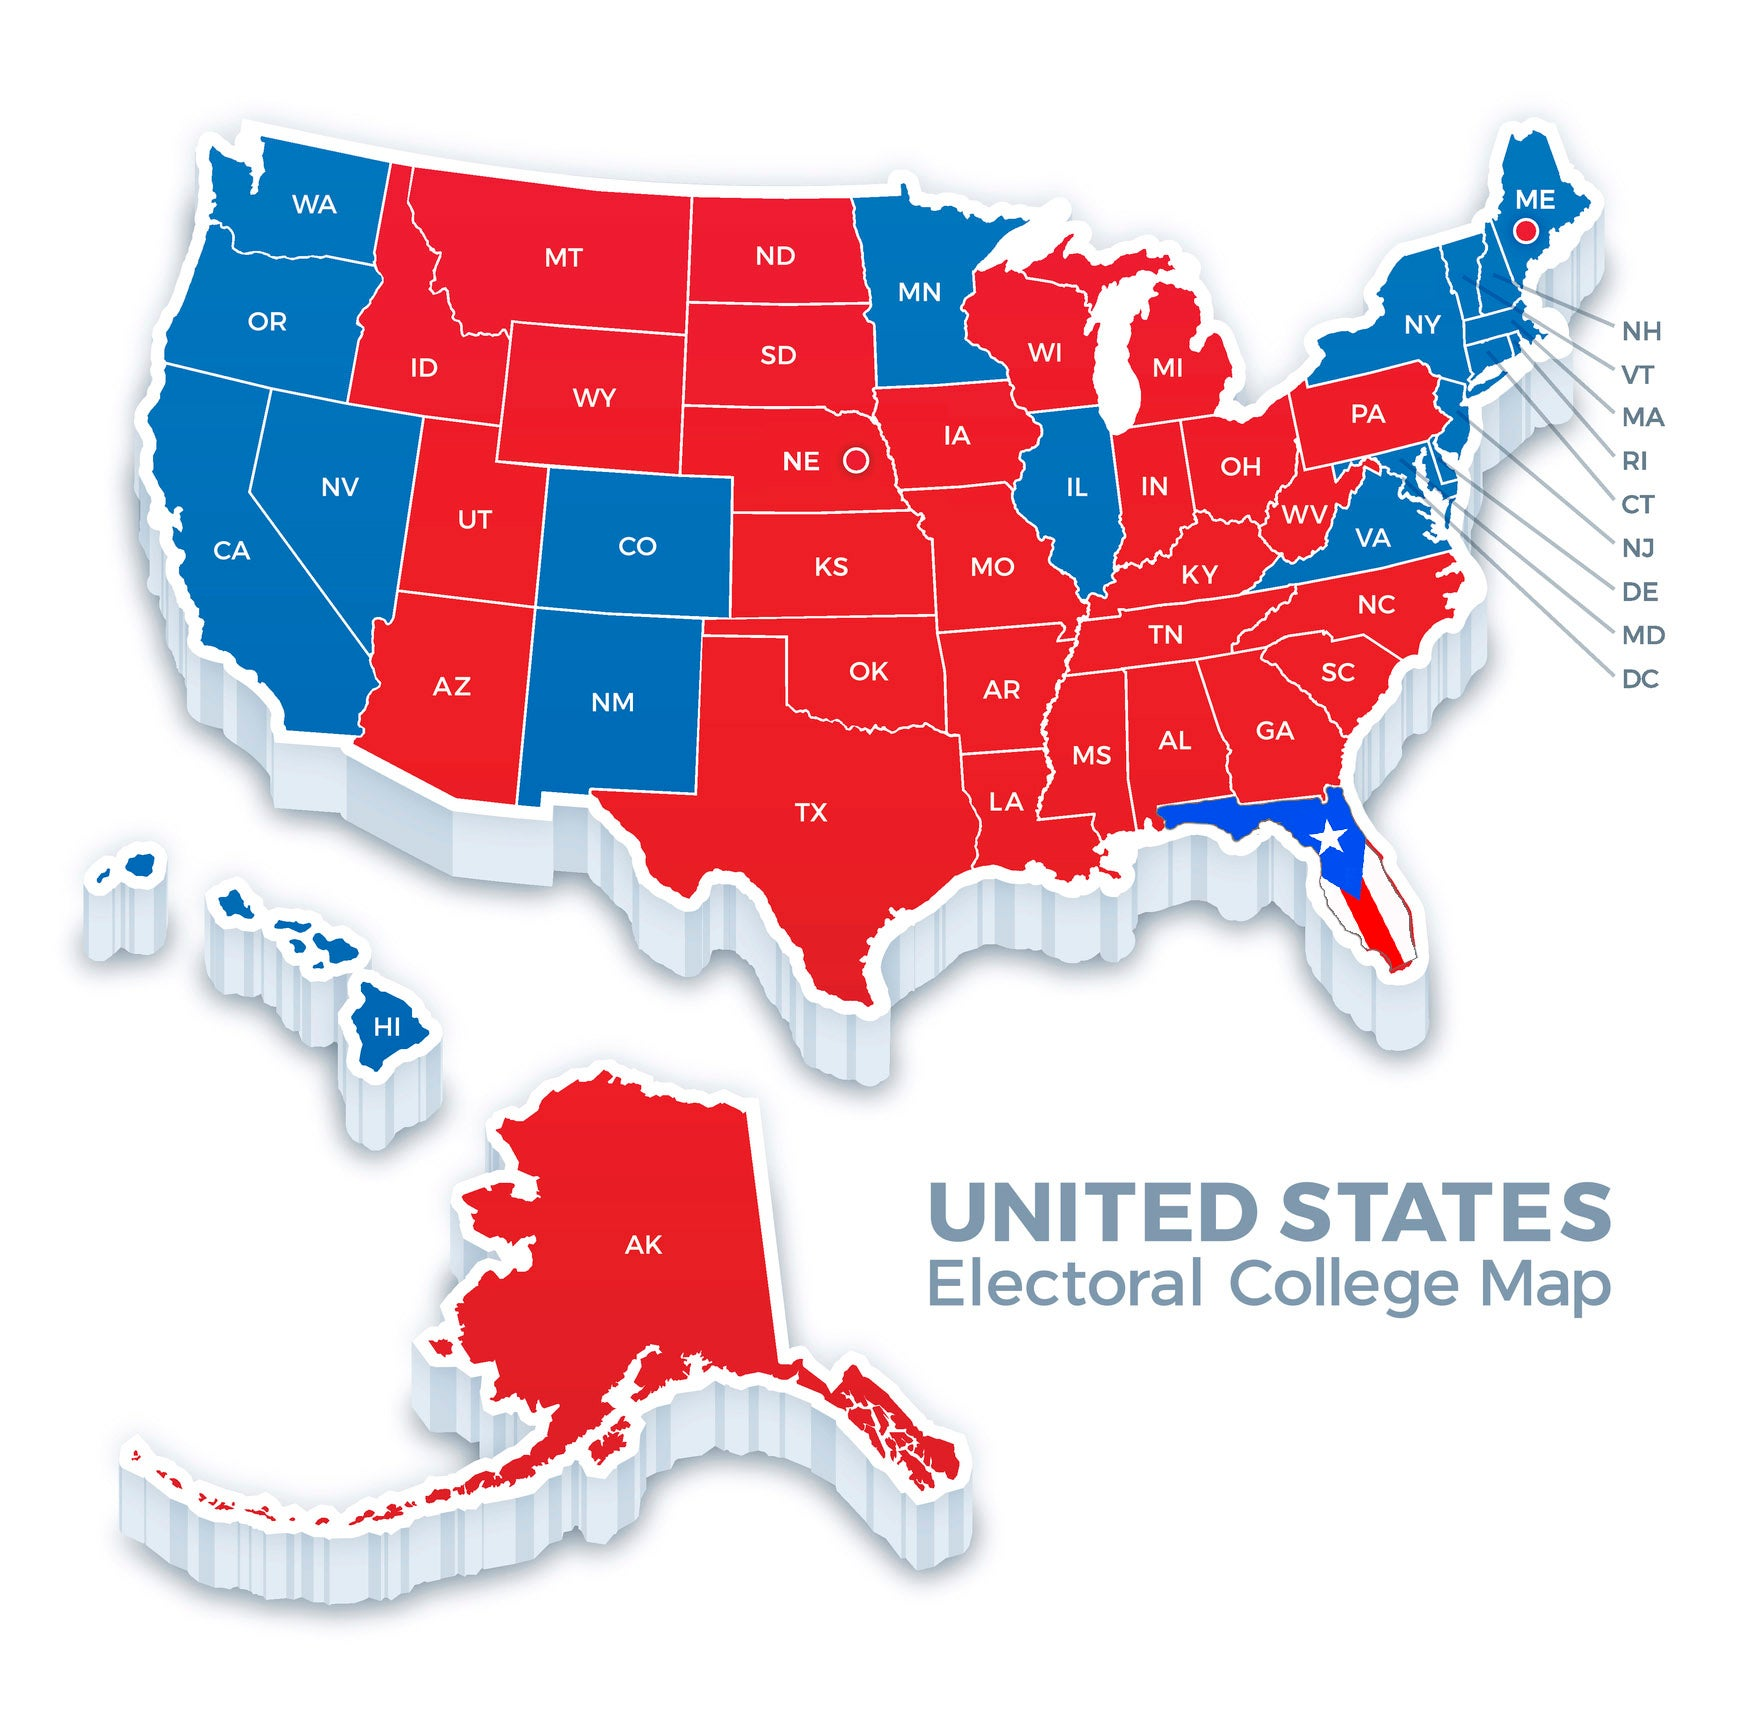 United States Presidential Election Electoral College Map 2016 The - 2017-us-election-map